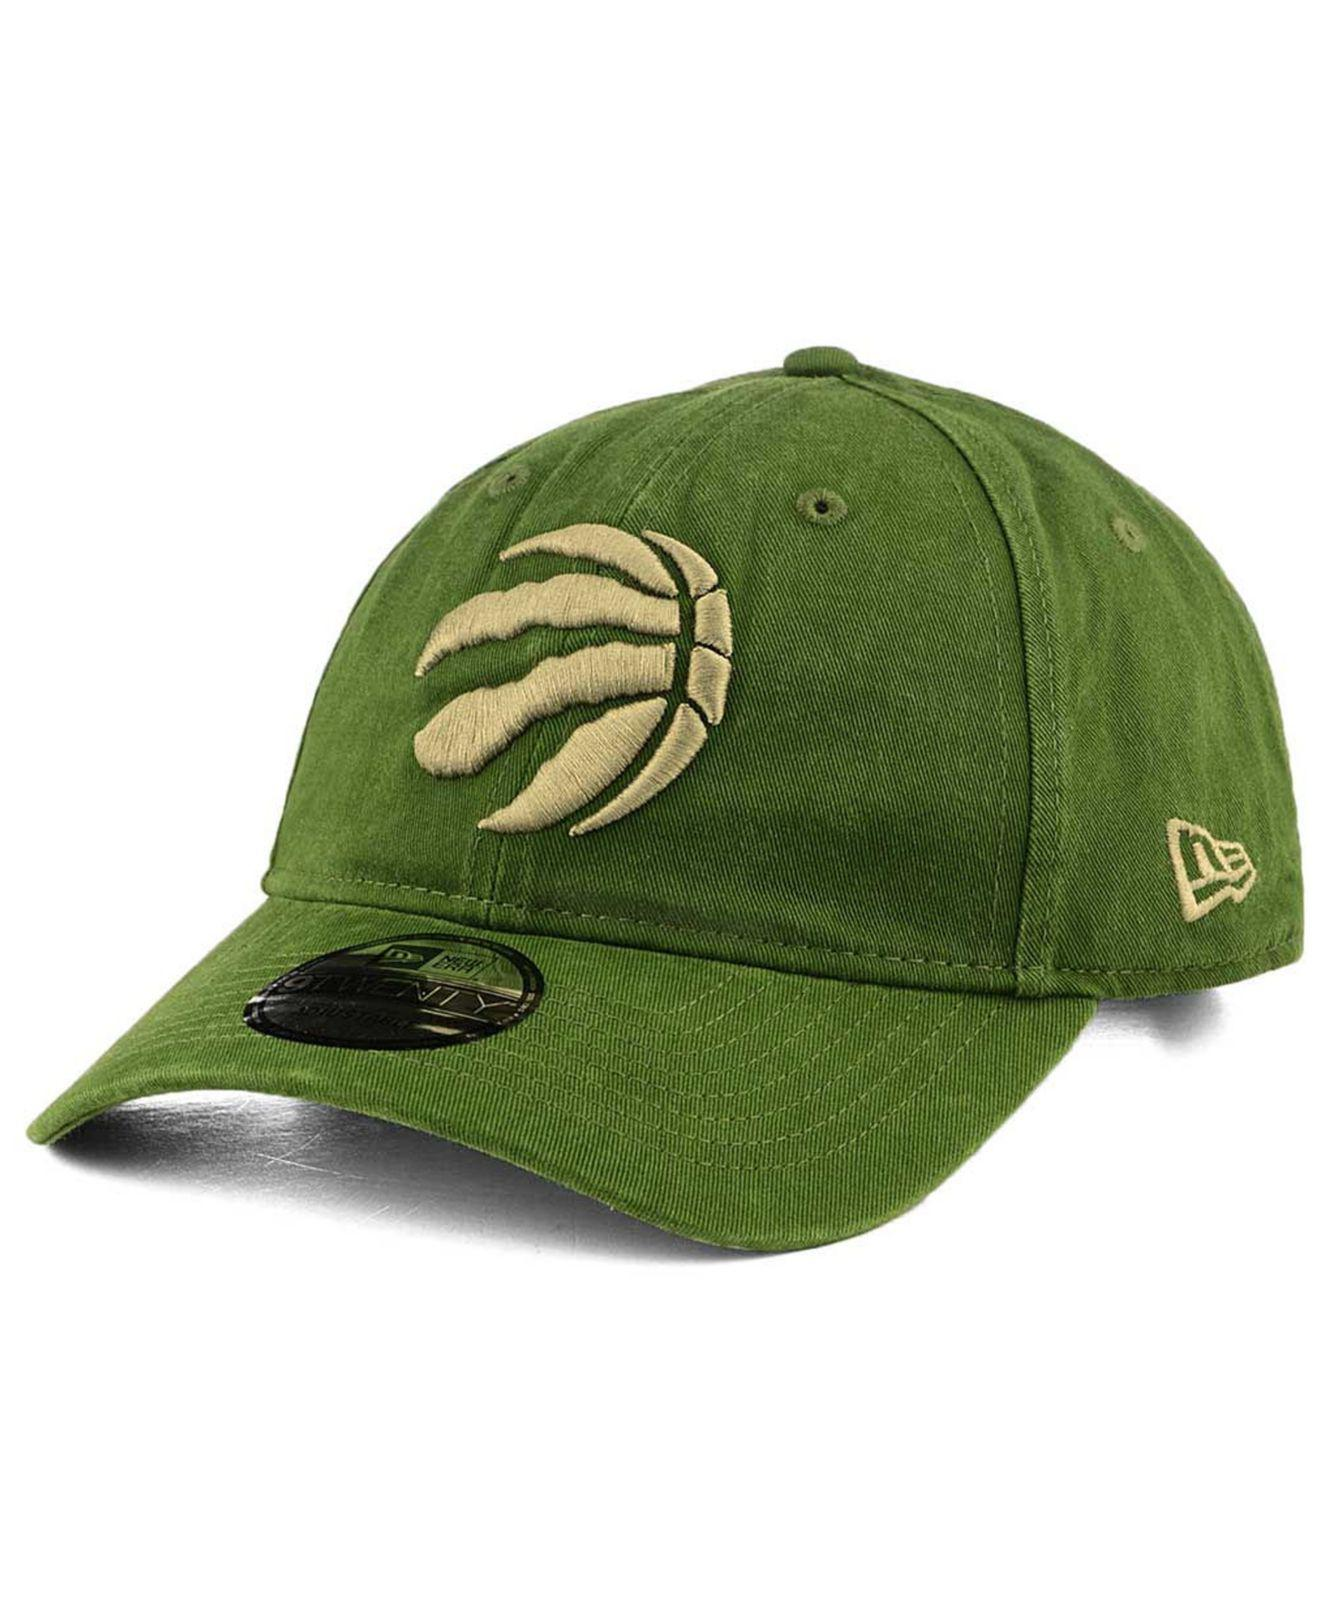 buy online d7fdf 6e6df ... get ktz. mens green all olive 9twenty dad cap 42901 a36c0